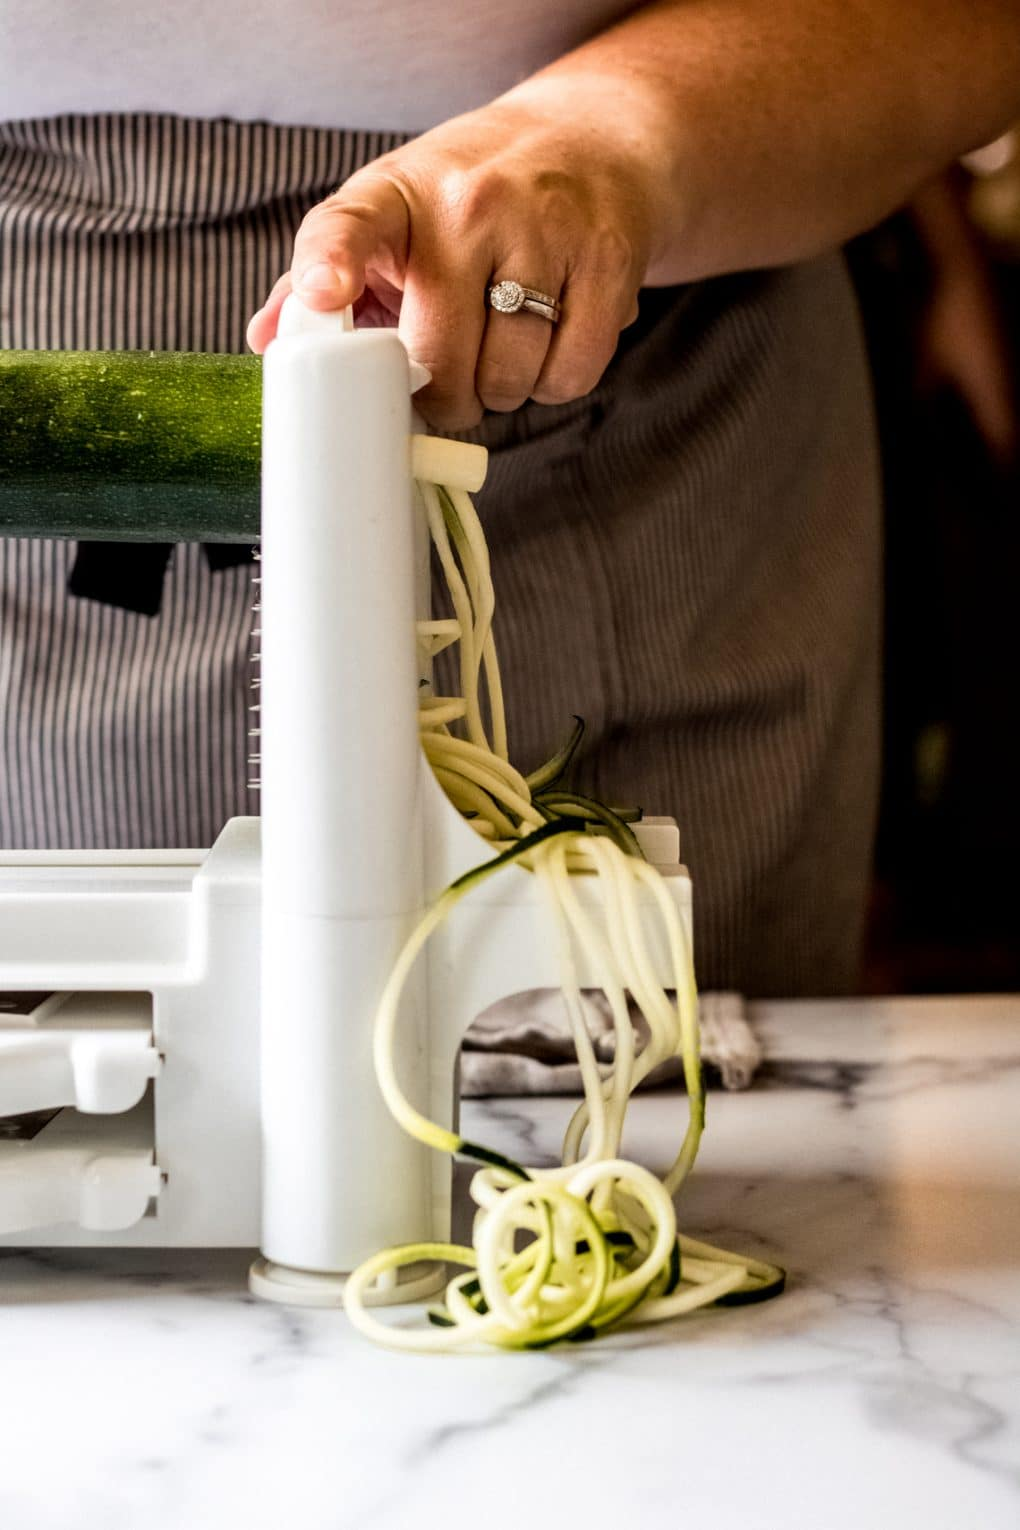 a woman using a spiralizer to make zucchini noodles